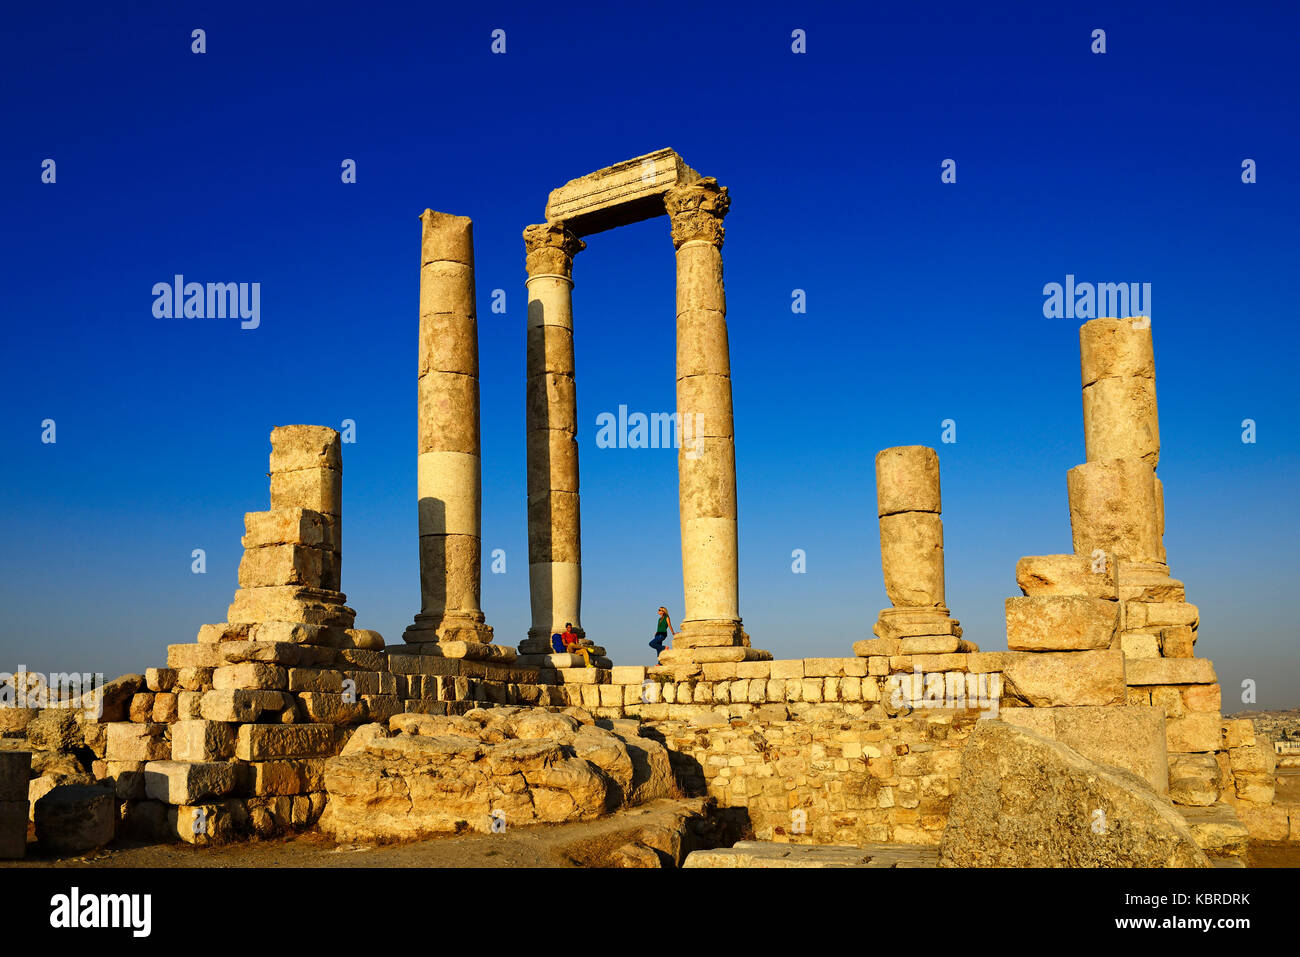 Temple d'hercule à la citadelle, l'ancienne cité romaine de Philadelphie, Amman, Jordanie Photo Stock